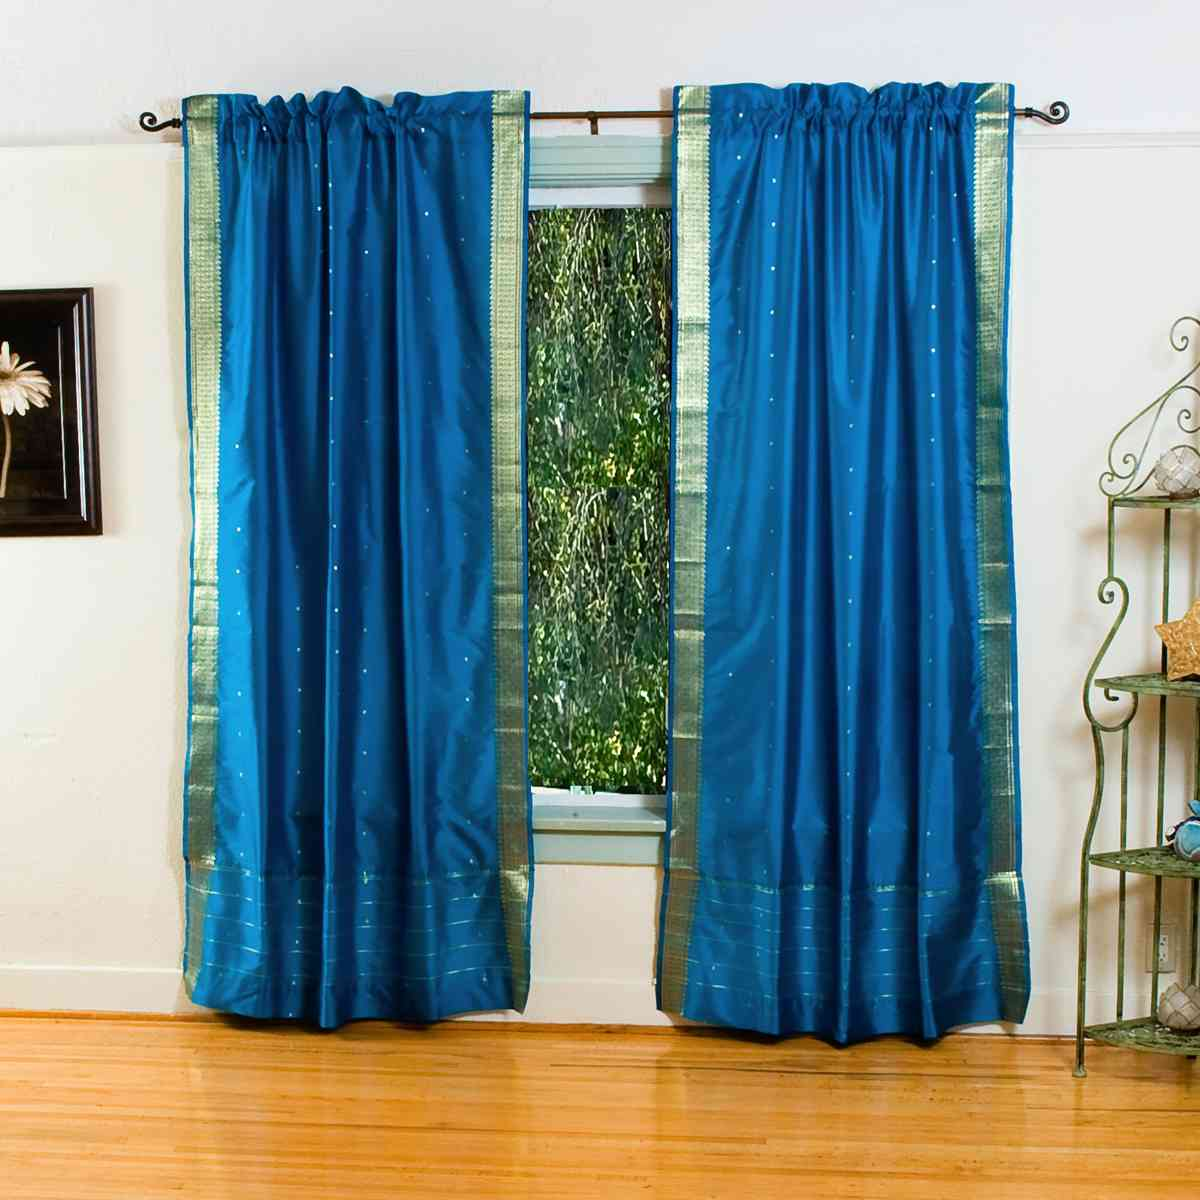 Blue curtains for living room - Curtains Blue Titere Con Bonete Iwanna Wednesday All Things Bright And Beautiful